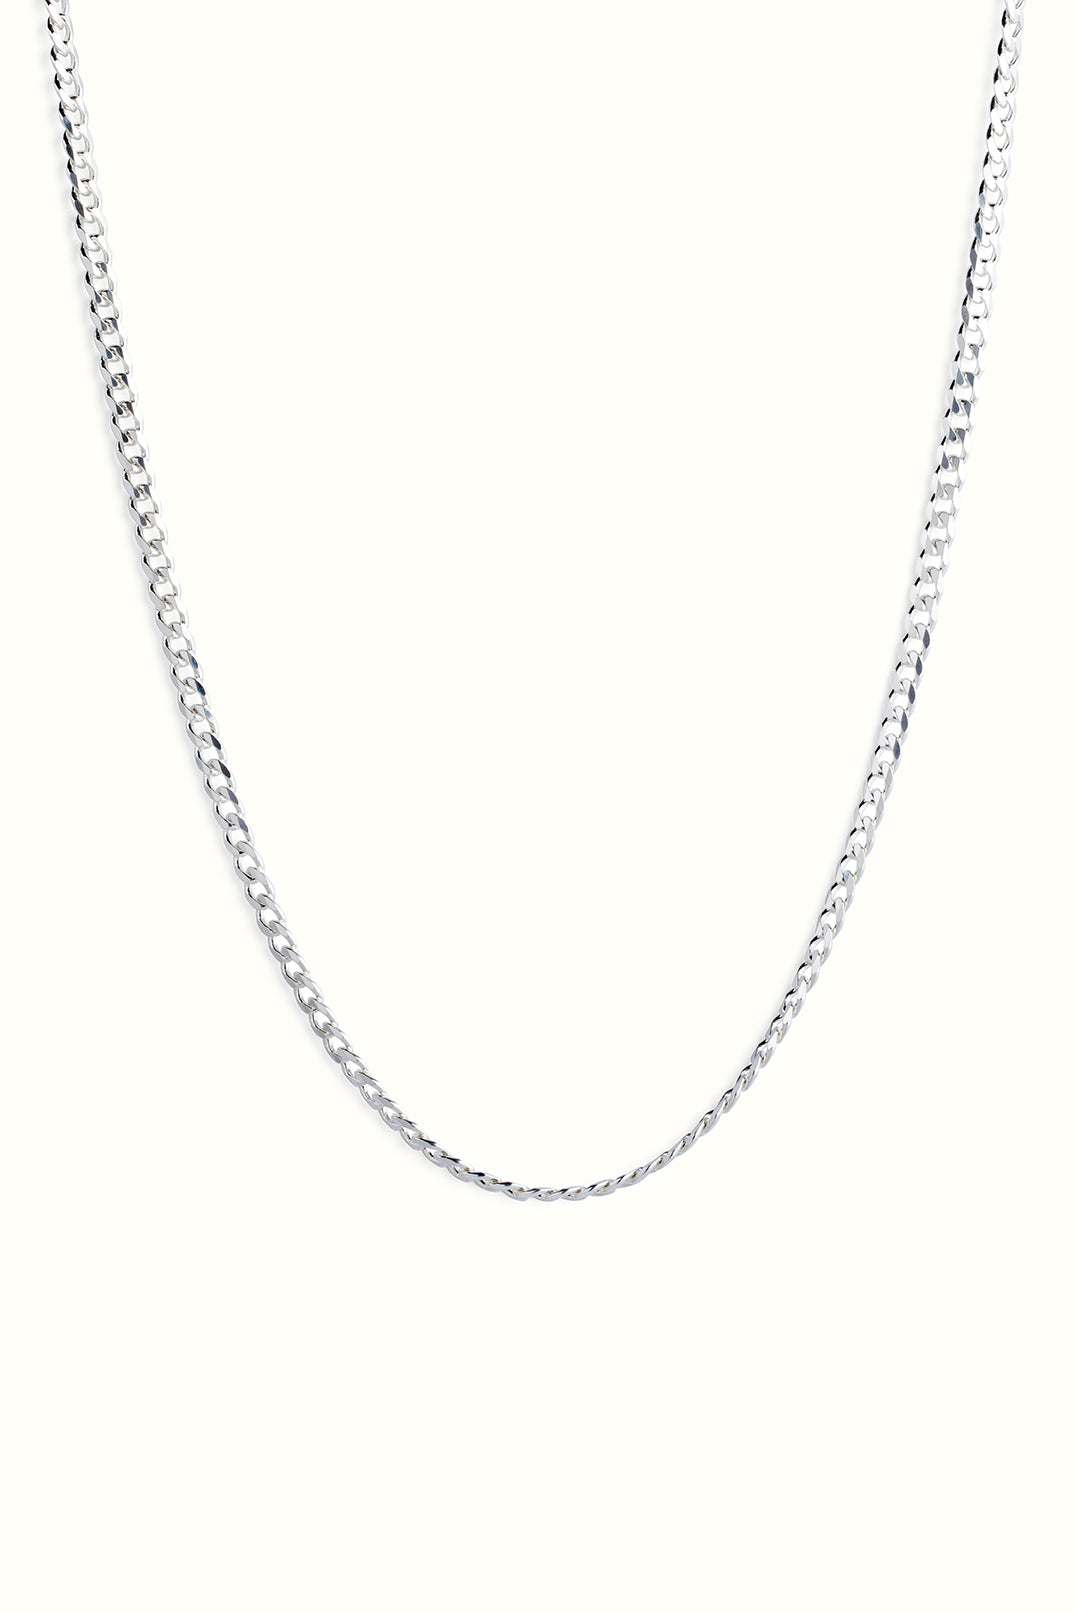 chunky sterling silver diamond cut curb chain necklace in front of a white background